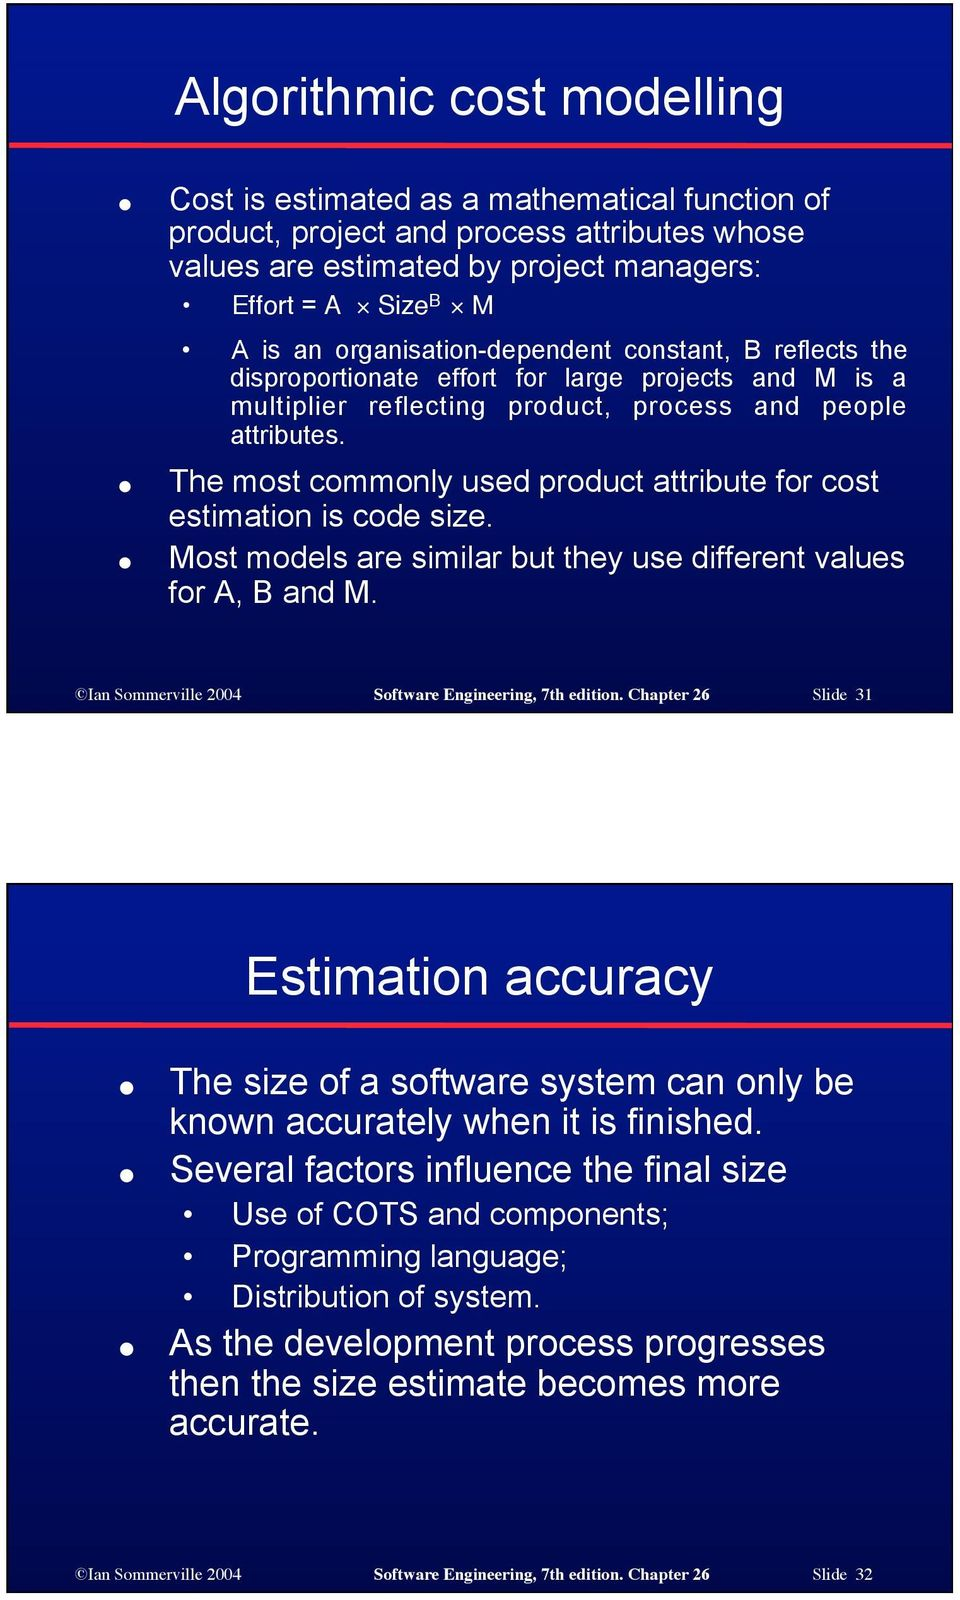 The most commonly used product attribute for cost estimation is code size. Most models are similar but they use different values for A, B and M. Ian Sommerville 2004 Software Engineering, 7th edition.